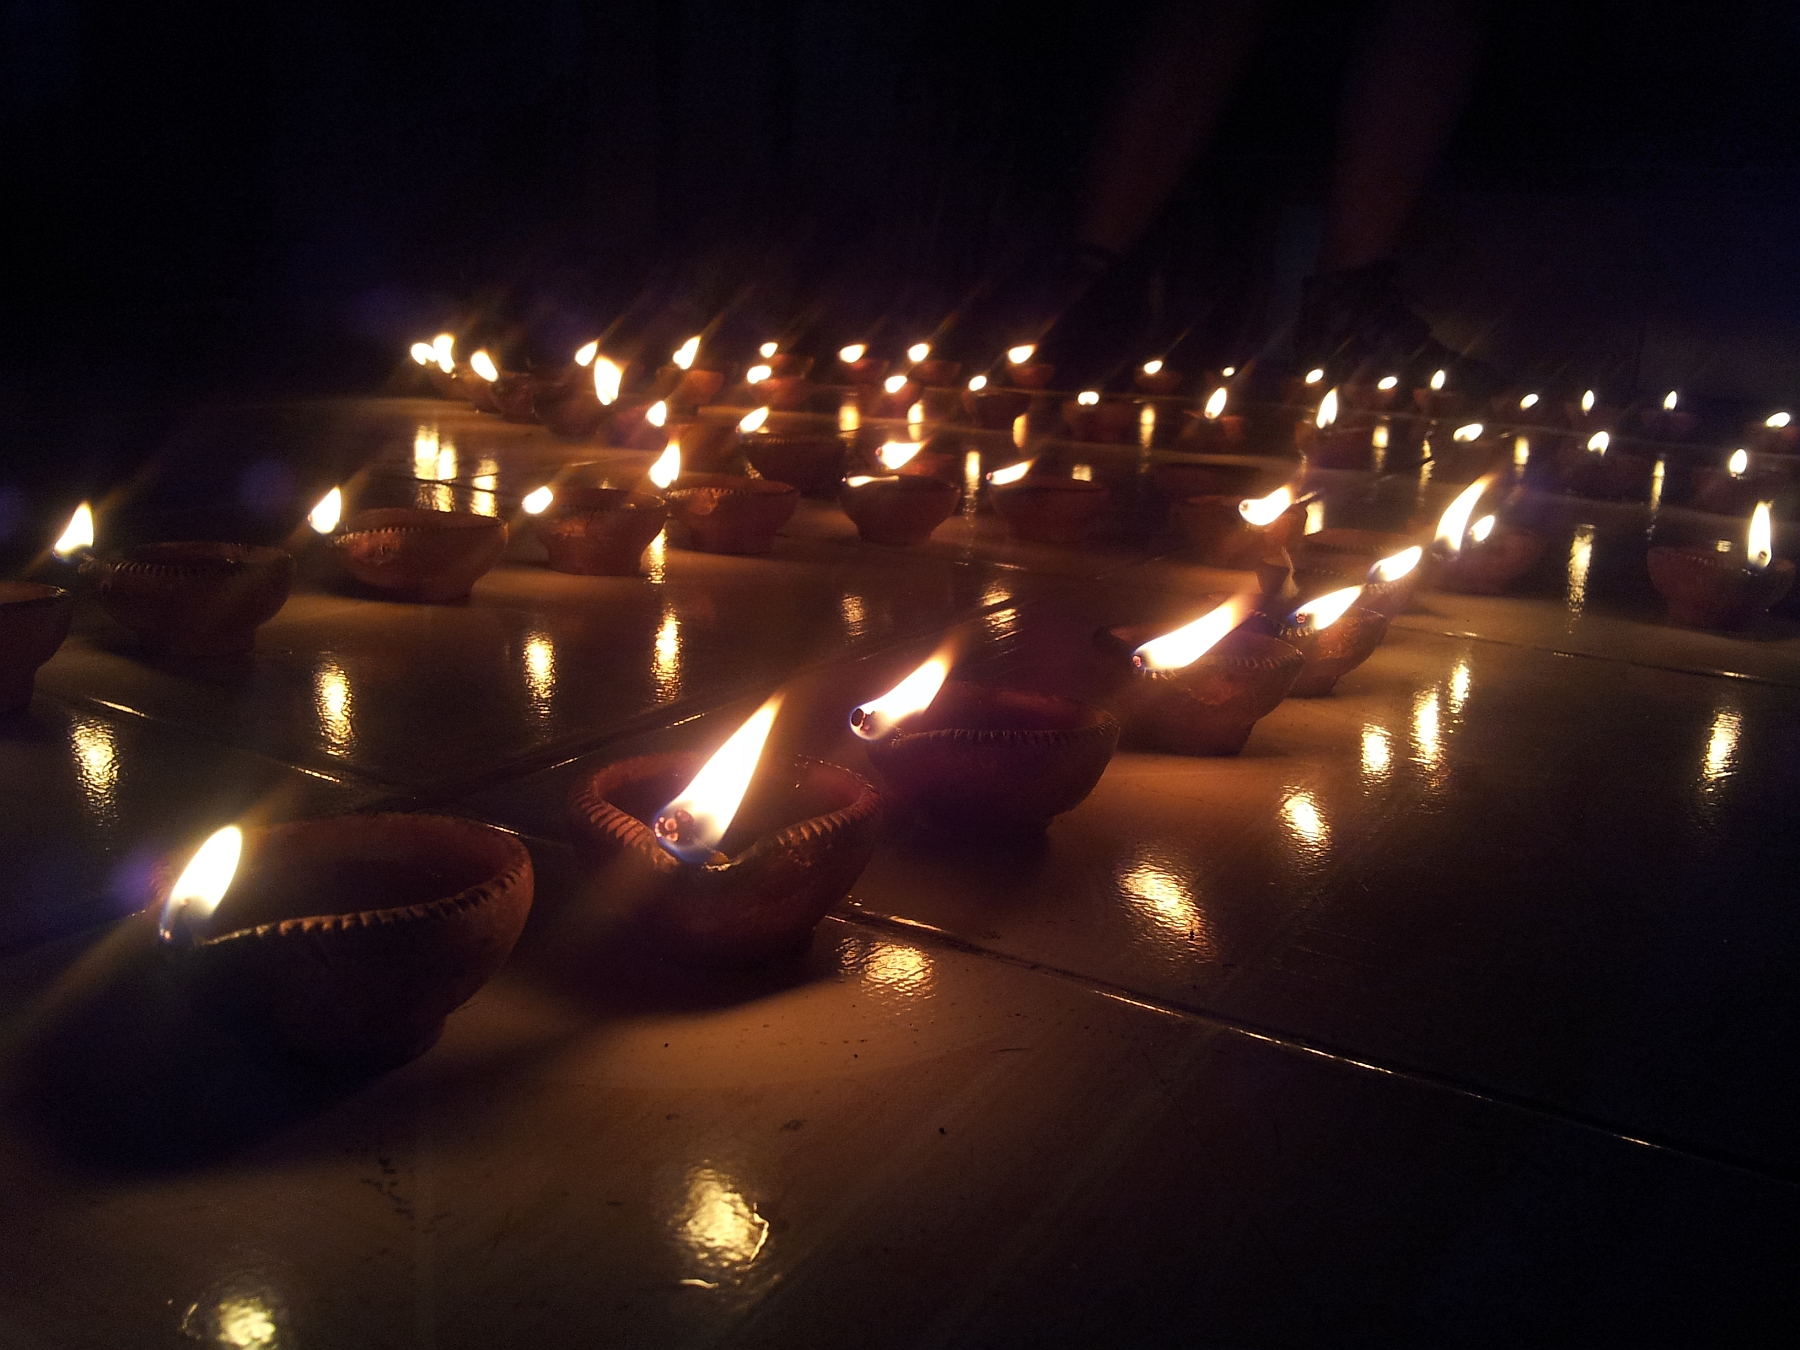 a display of earthen diyas lit up to decorate personal spaces in home ... celebrating the spirit of diwali ...